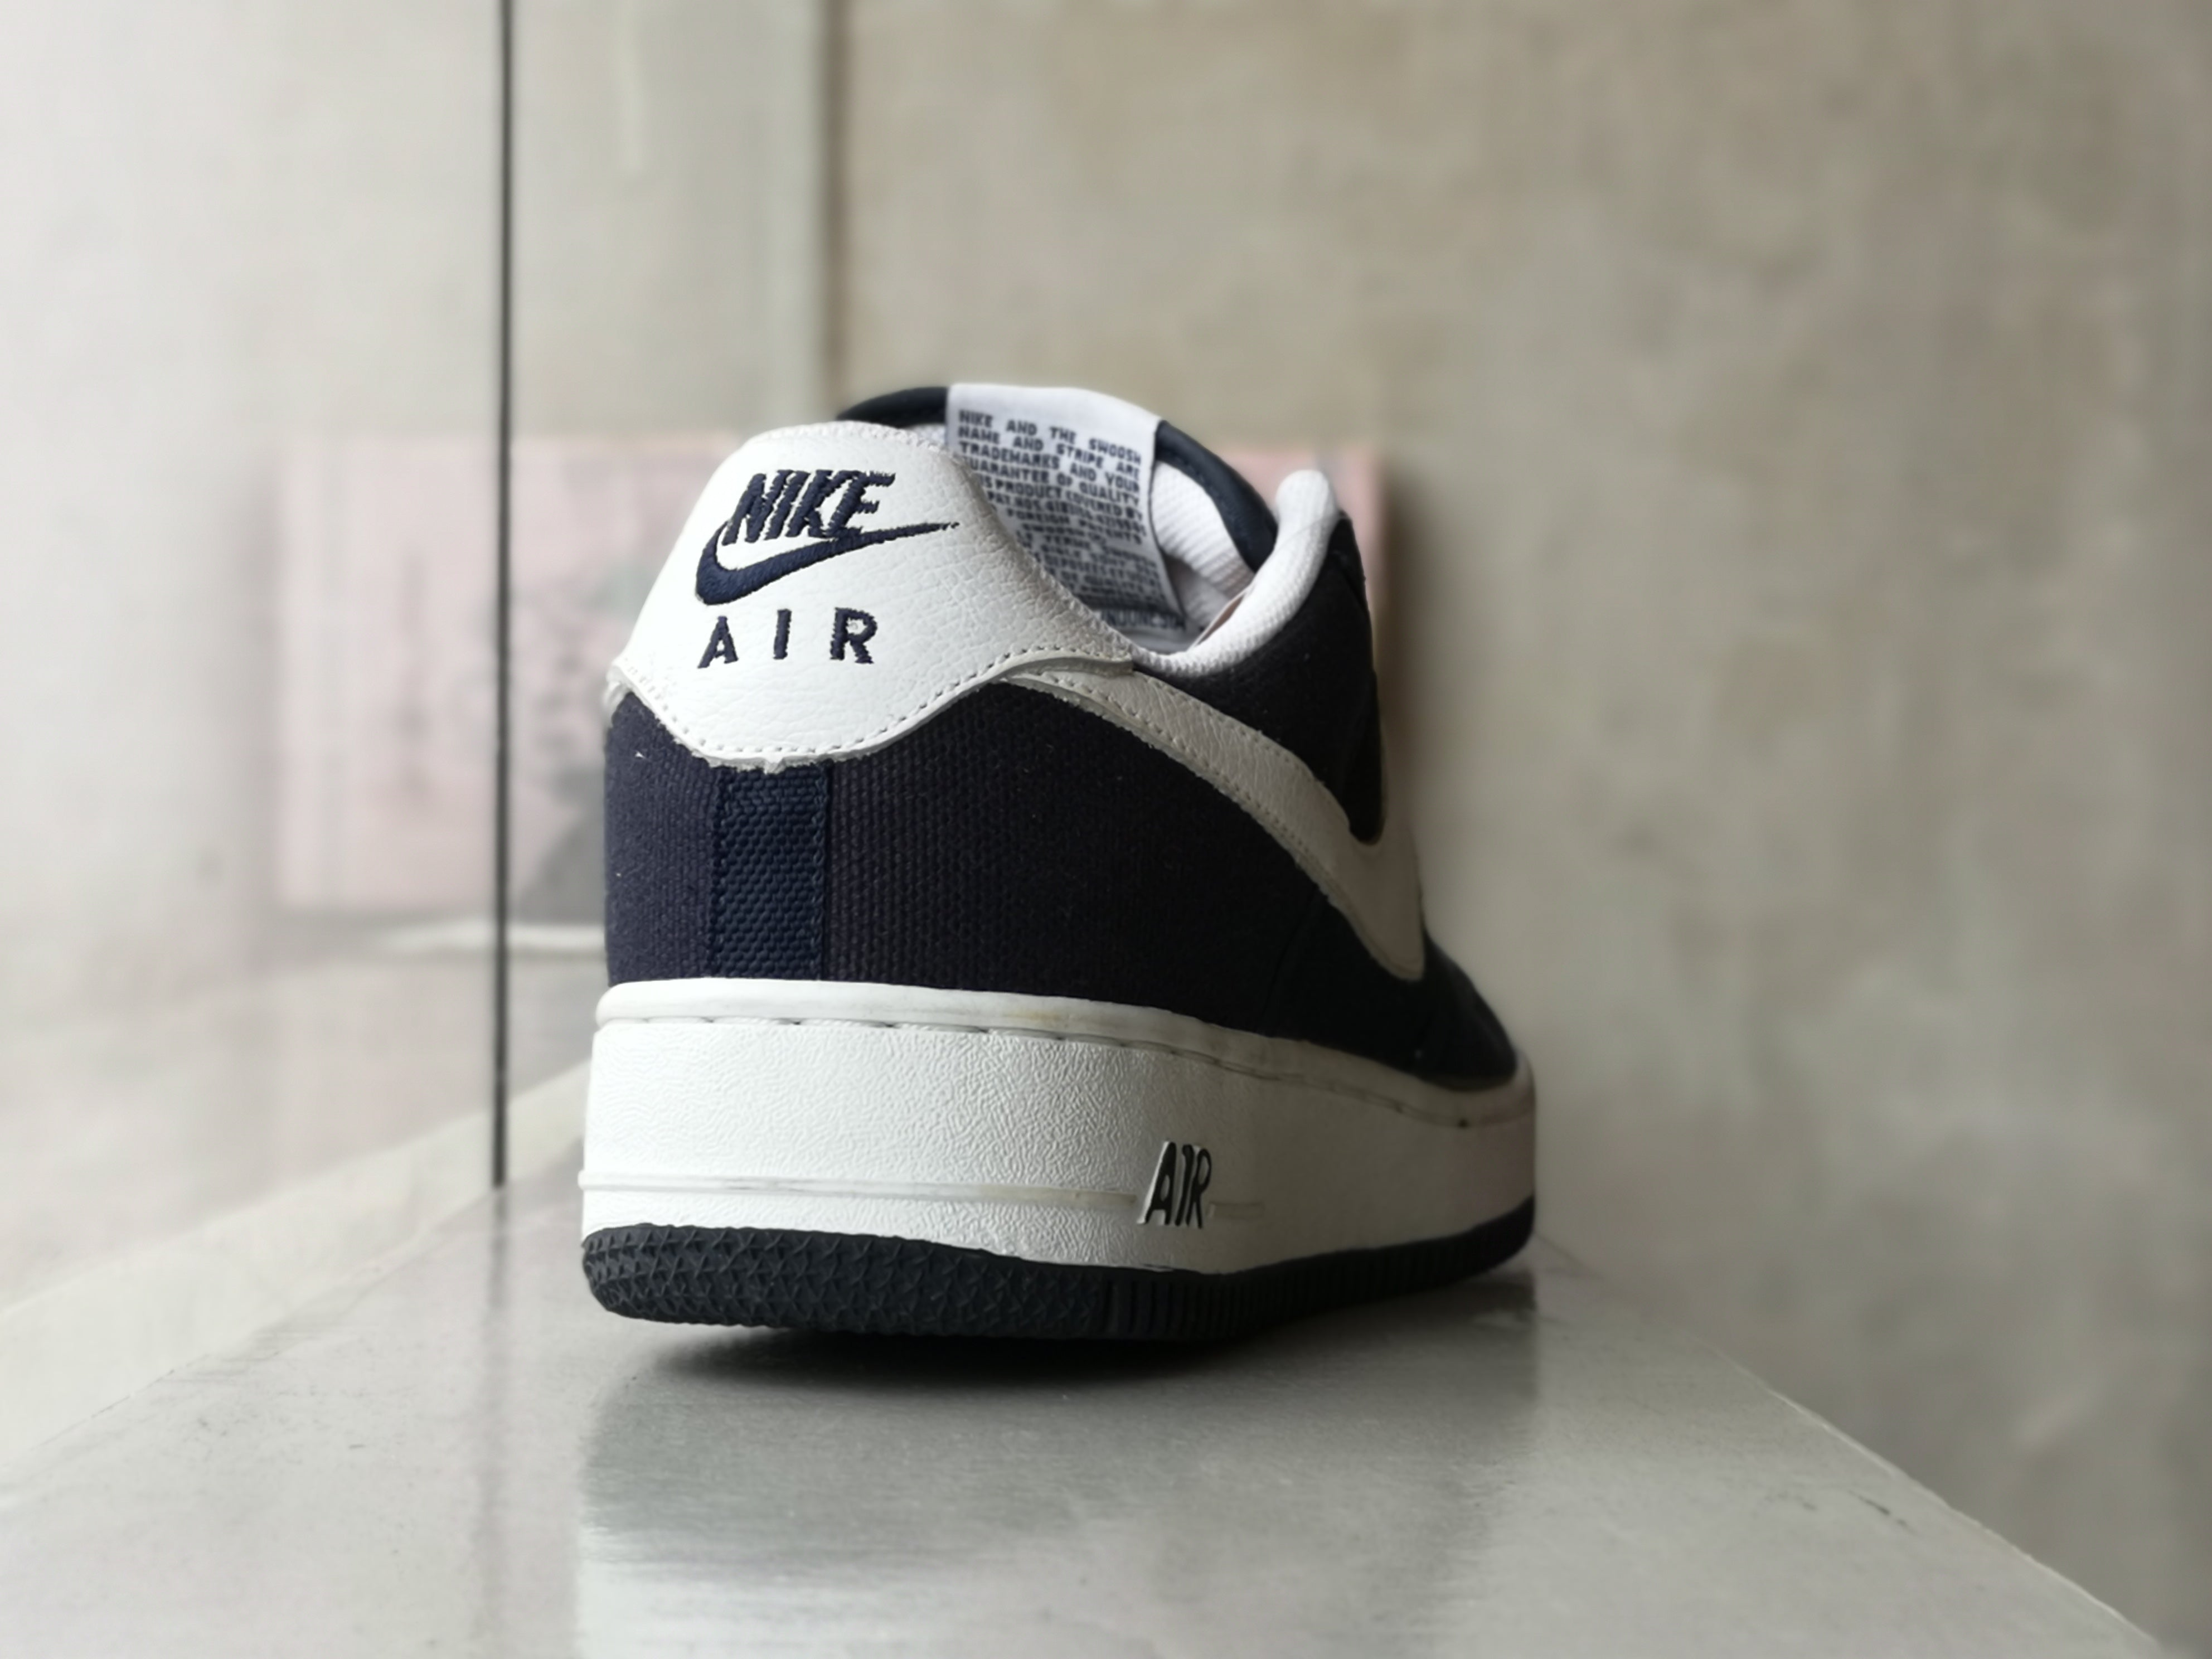 Nike Airforce 1 Low Navy Blue Canvas 2002